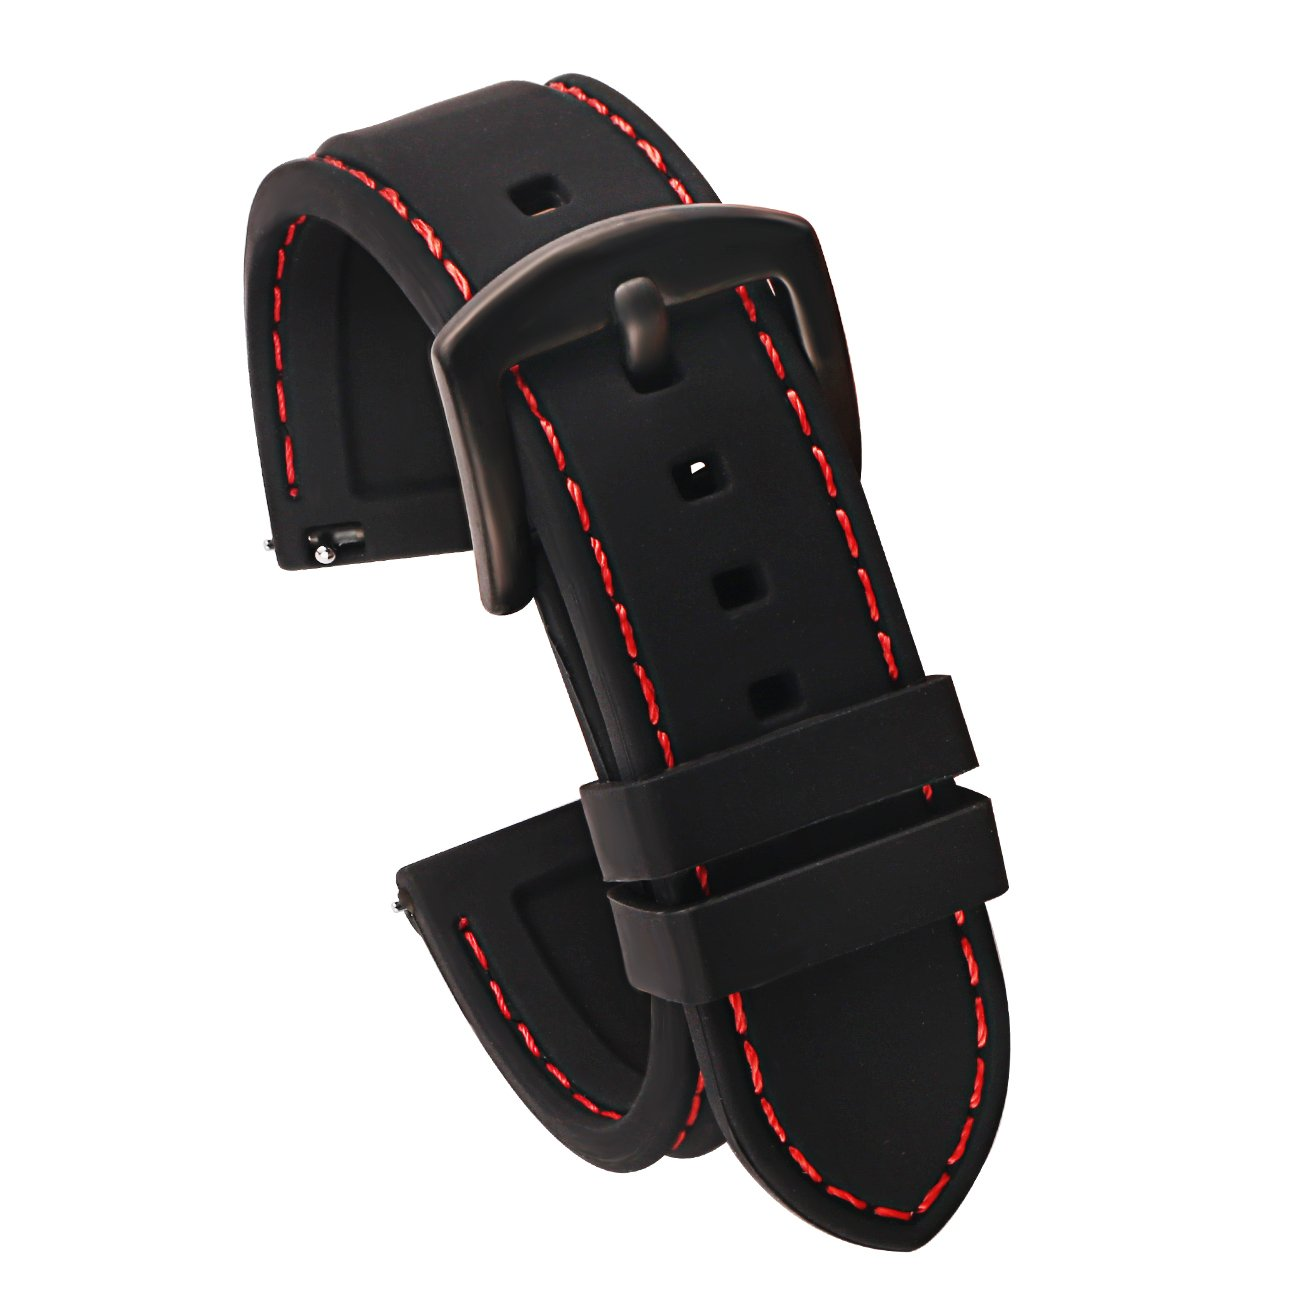 0eed1137413 Galleon - 22mm Quick Release Silicone Watch Strap For Watches And  Smartwatches Replacement Watch Band Black(Red Stitching Black Buckle)